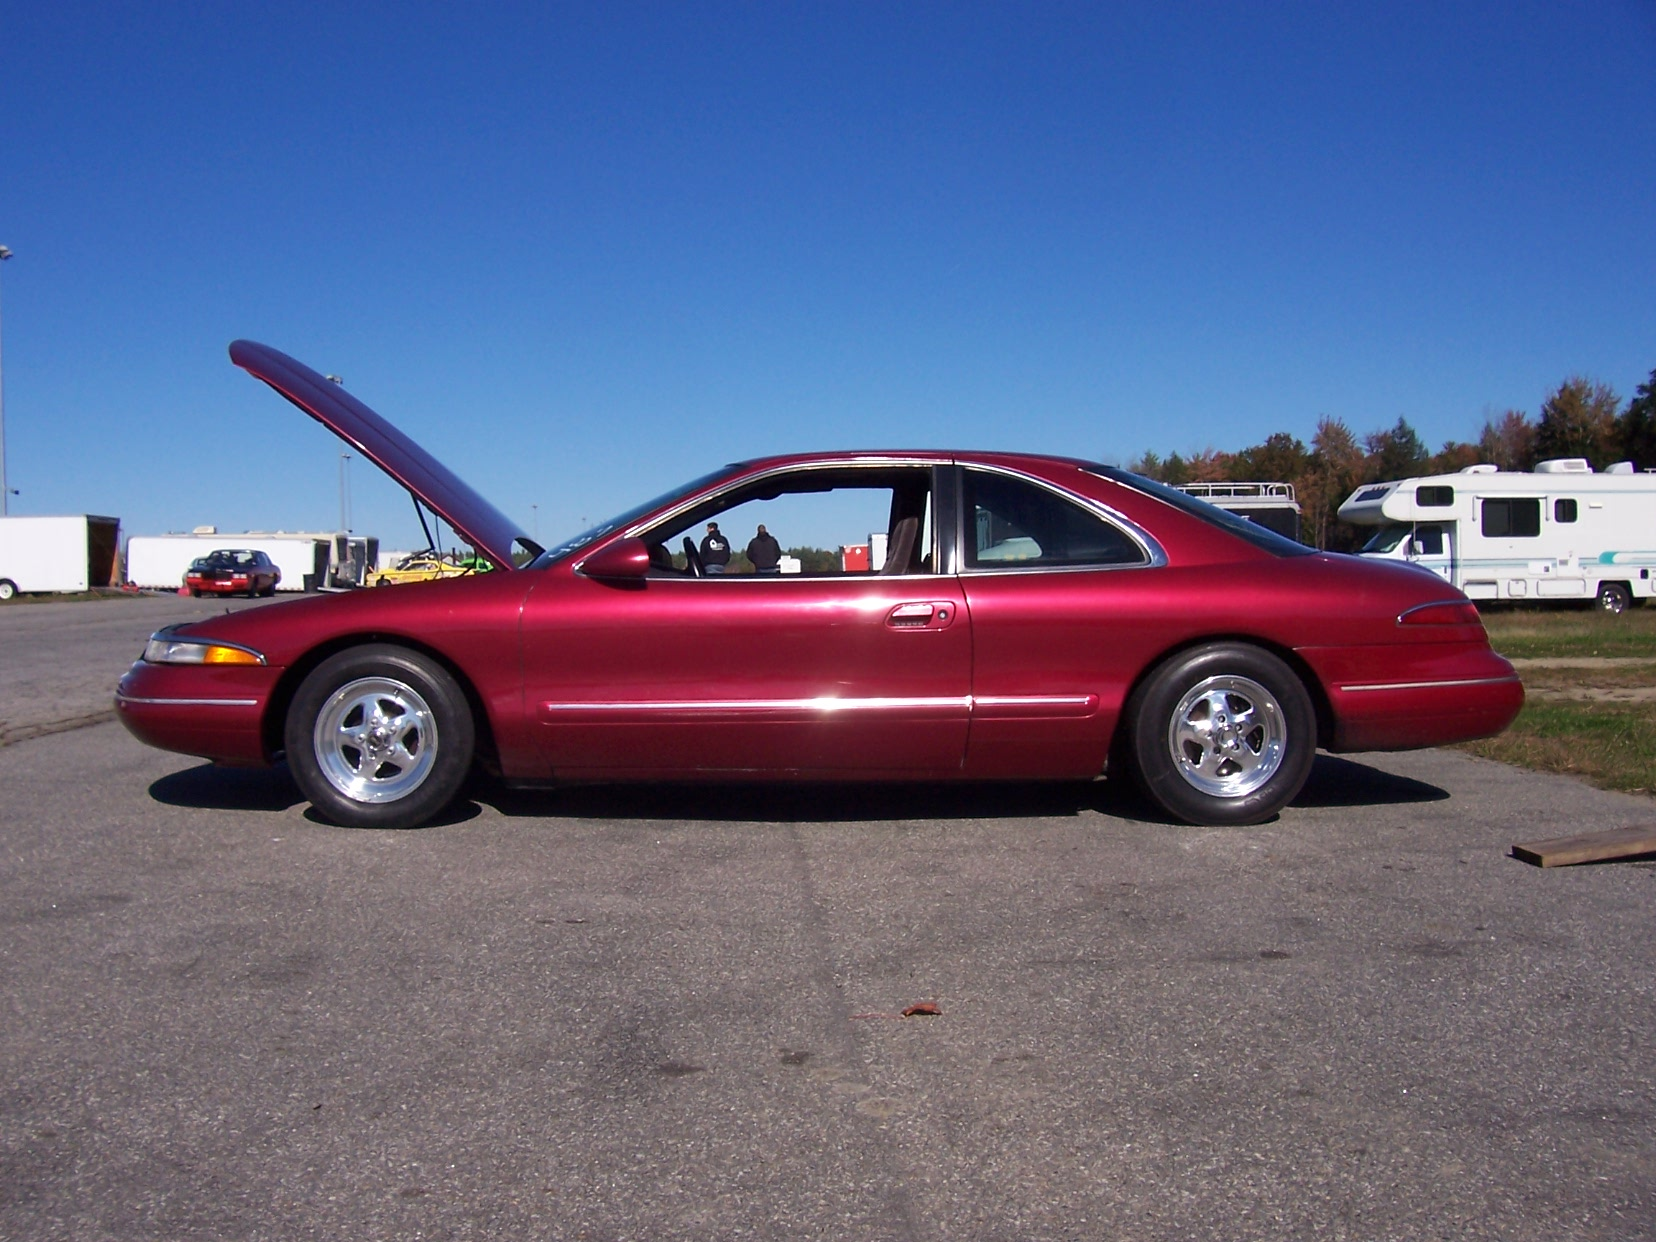 RED 1993 Lincoln Mark VIII